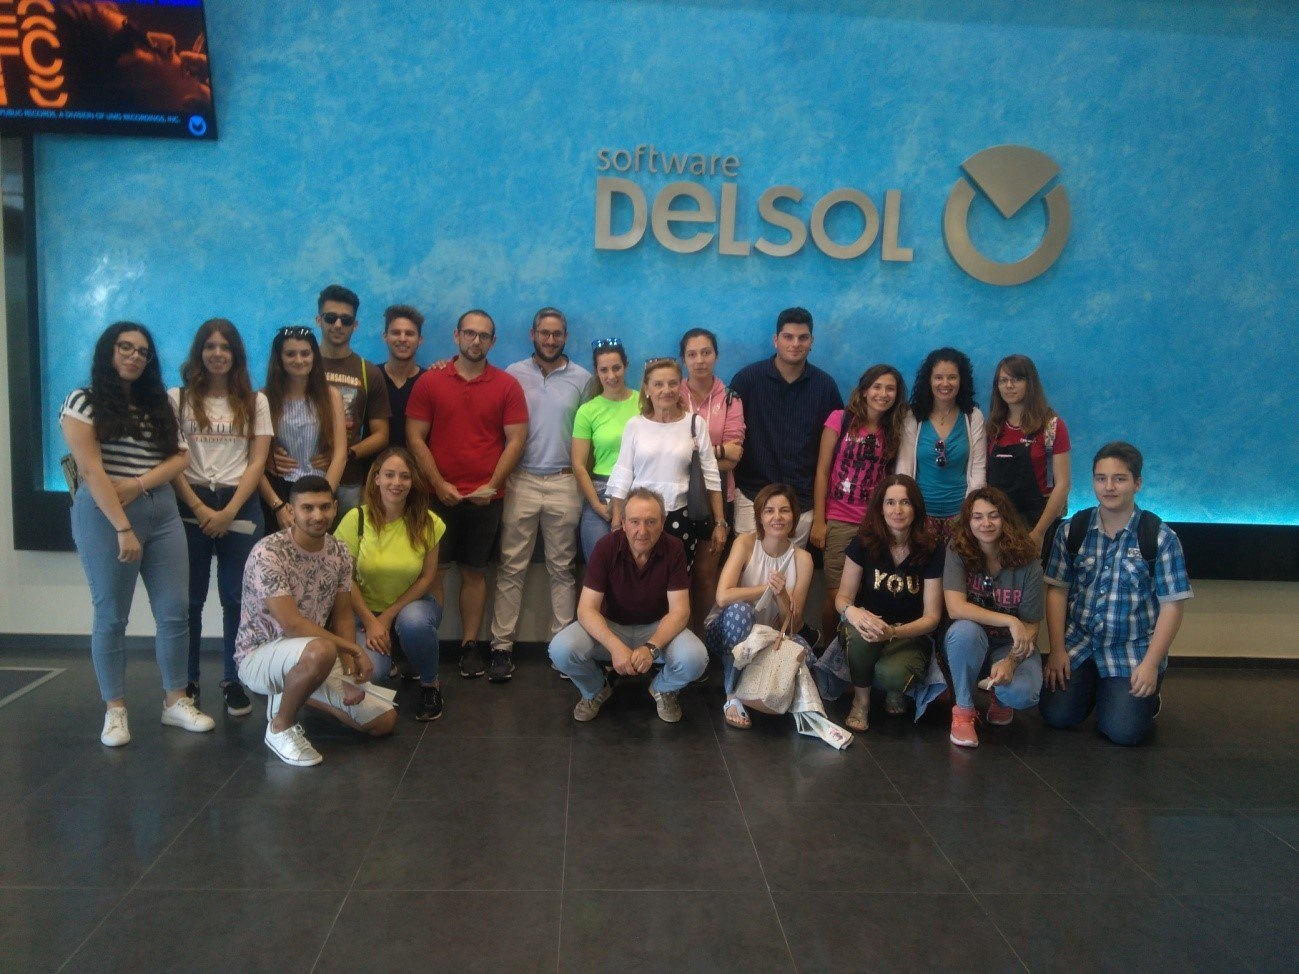 visita-CF-software-delsol-2019